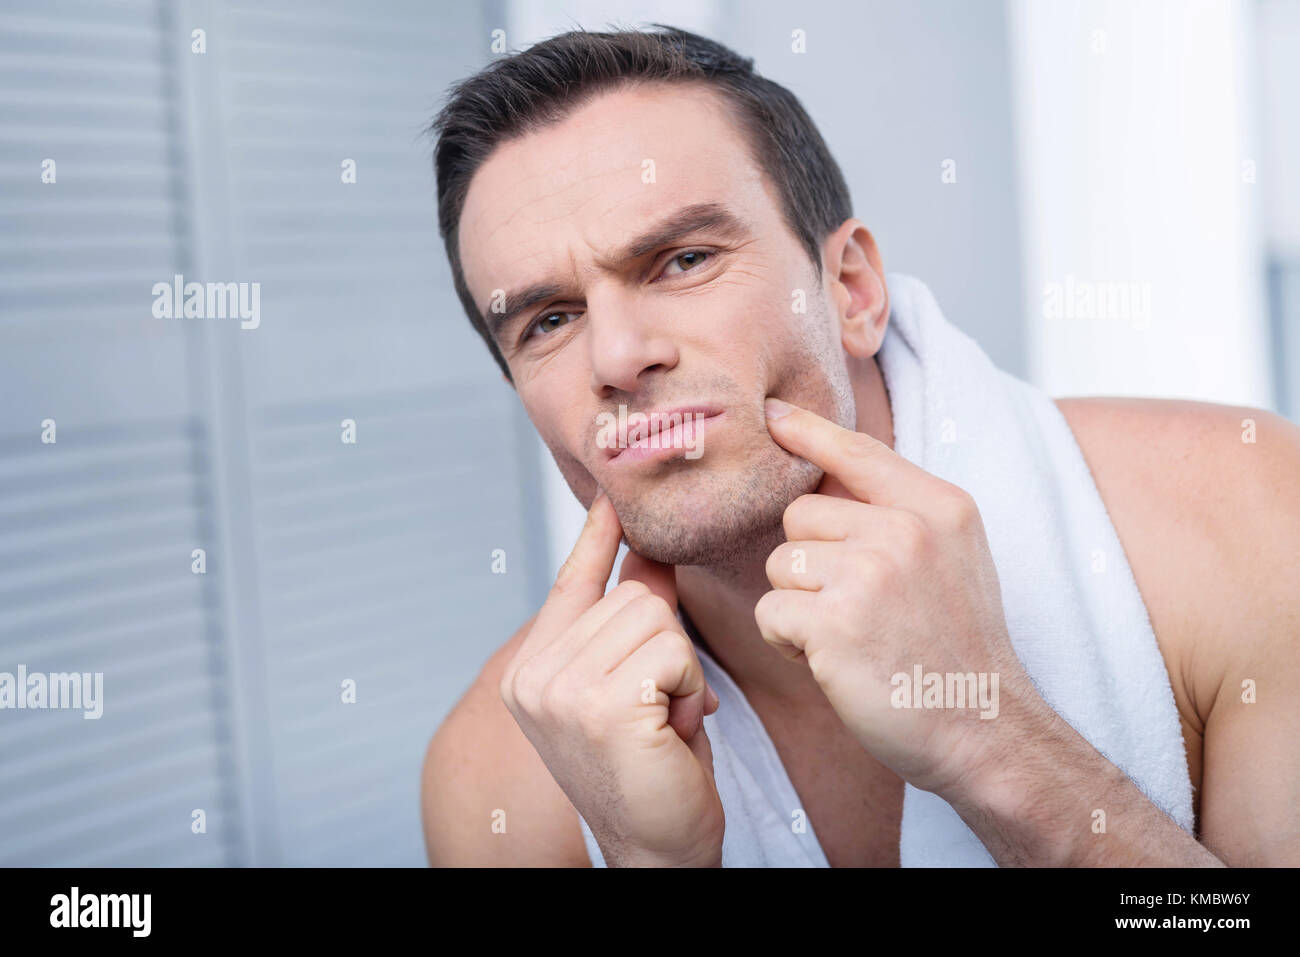 Adorable gloomy man  evaluating difference  - Stock Image